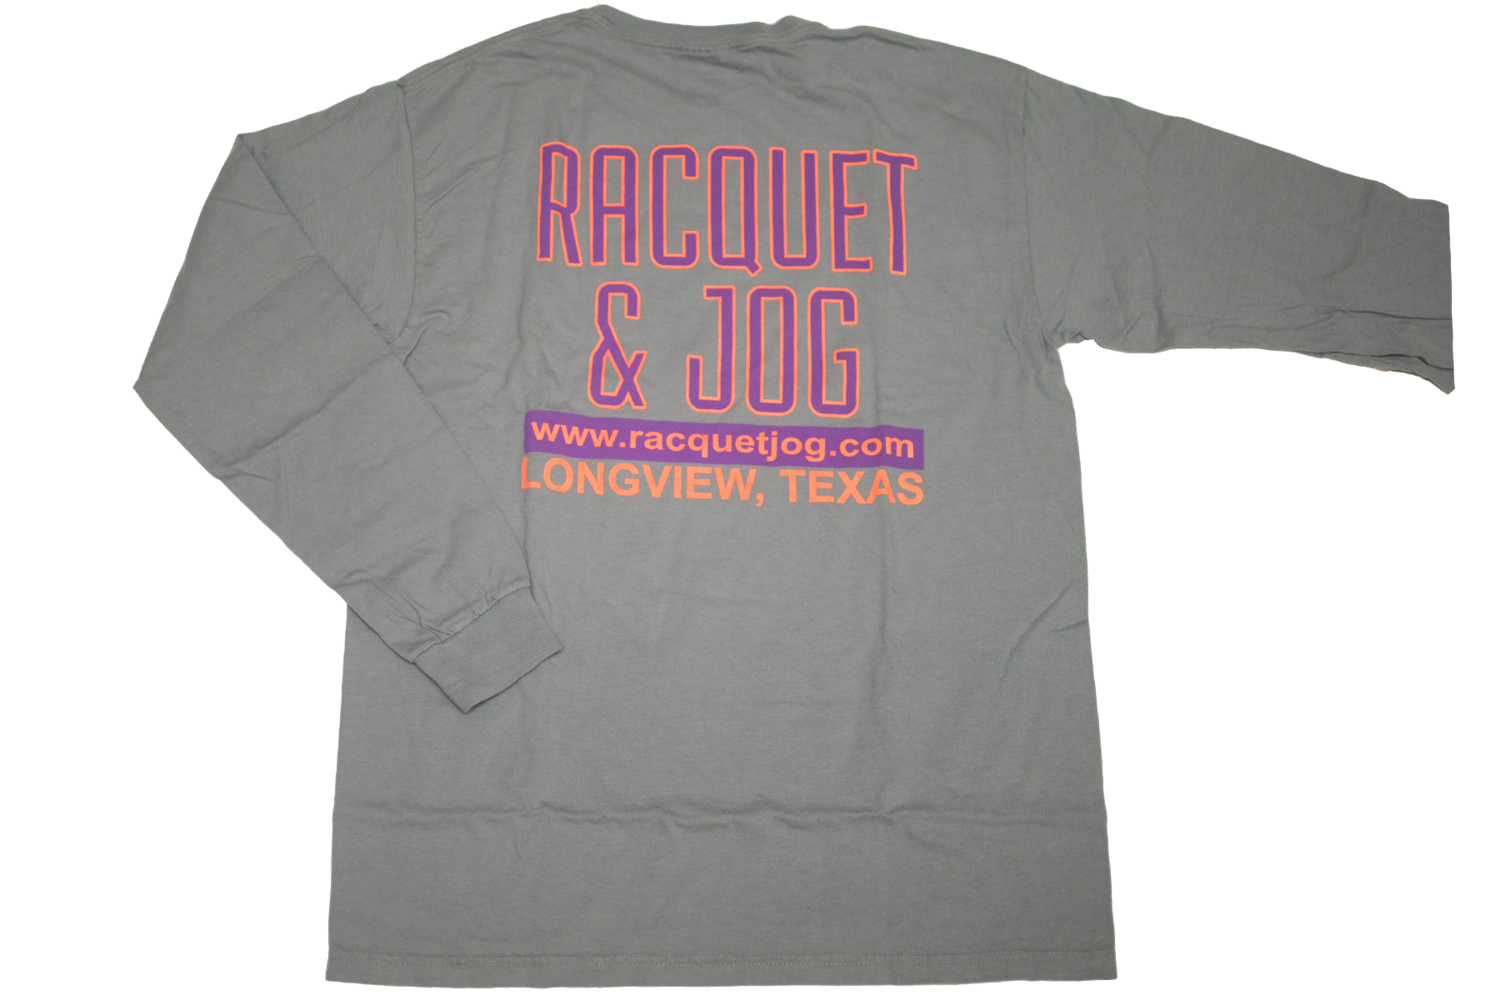 Racquet & Jog Old School Print Retro Long Sleeve Tee